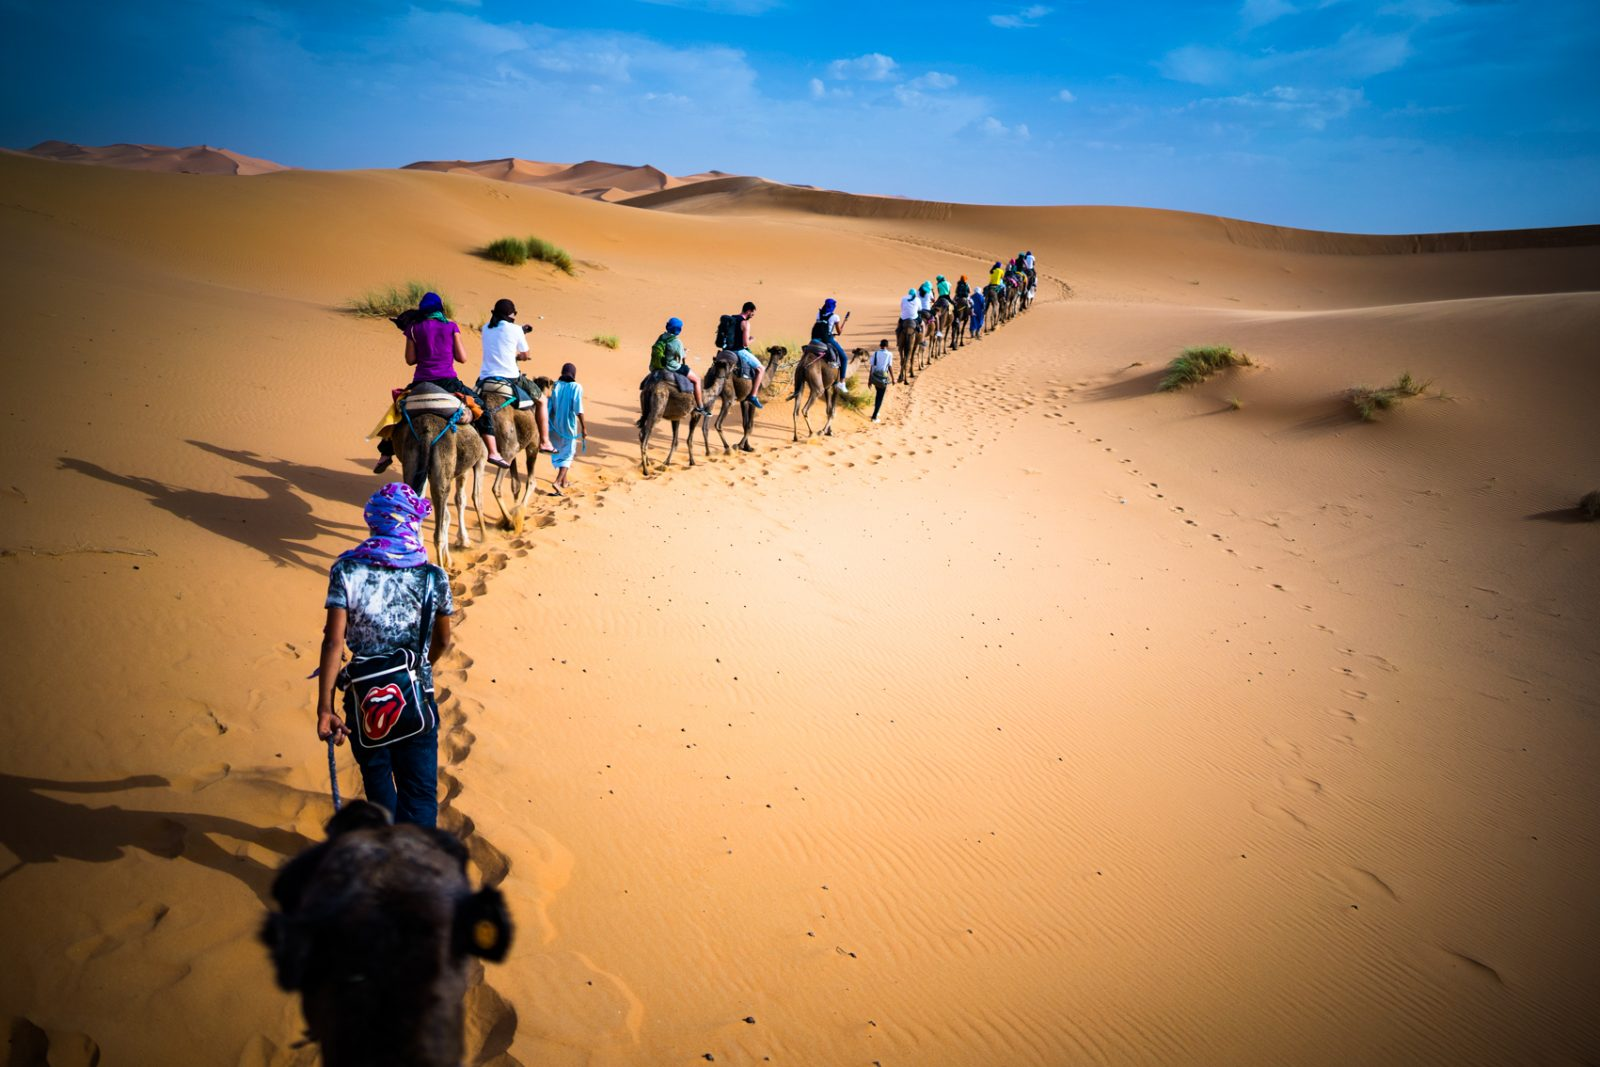 Marocco, camels and desert